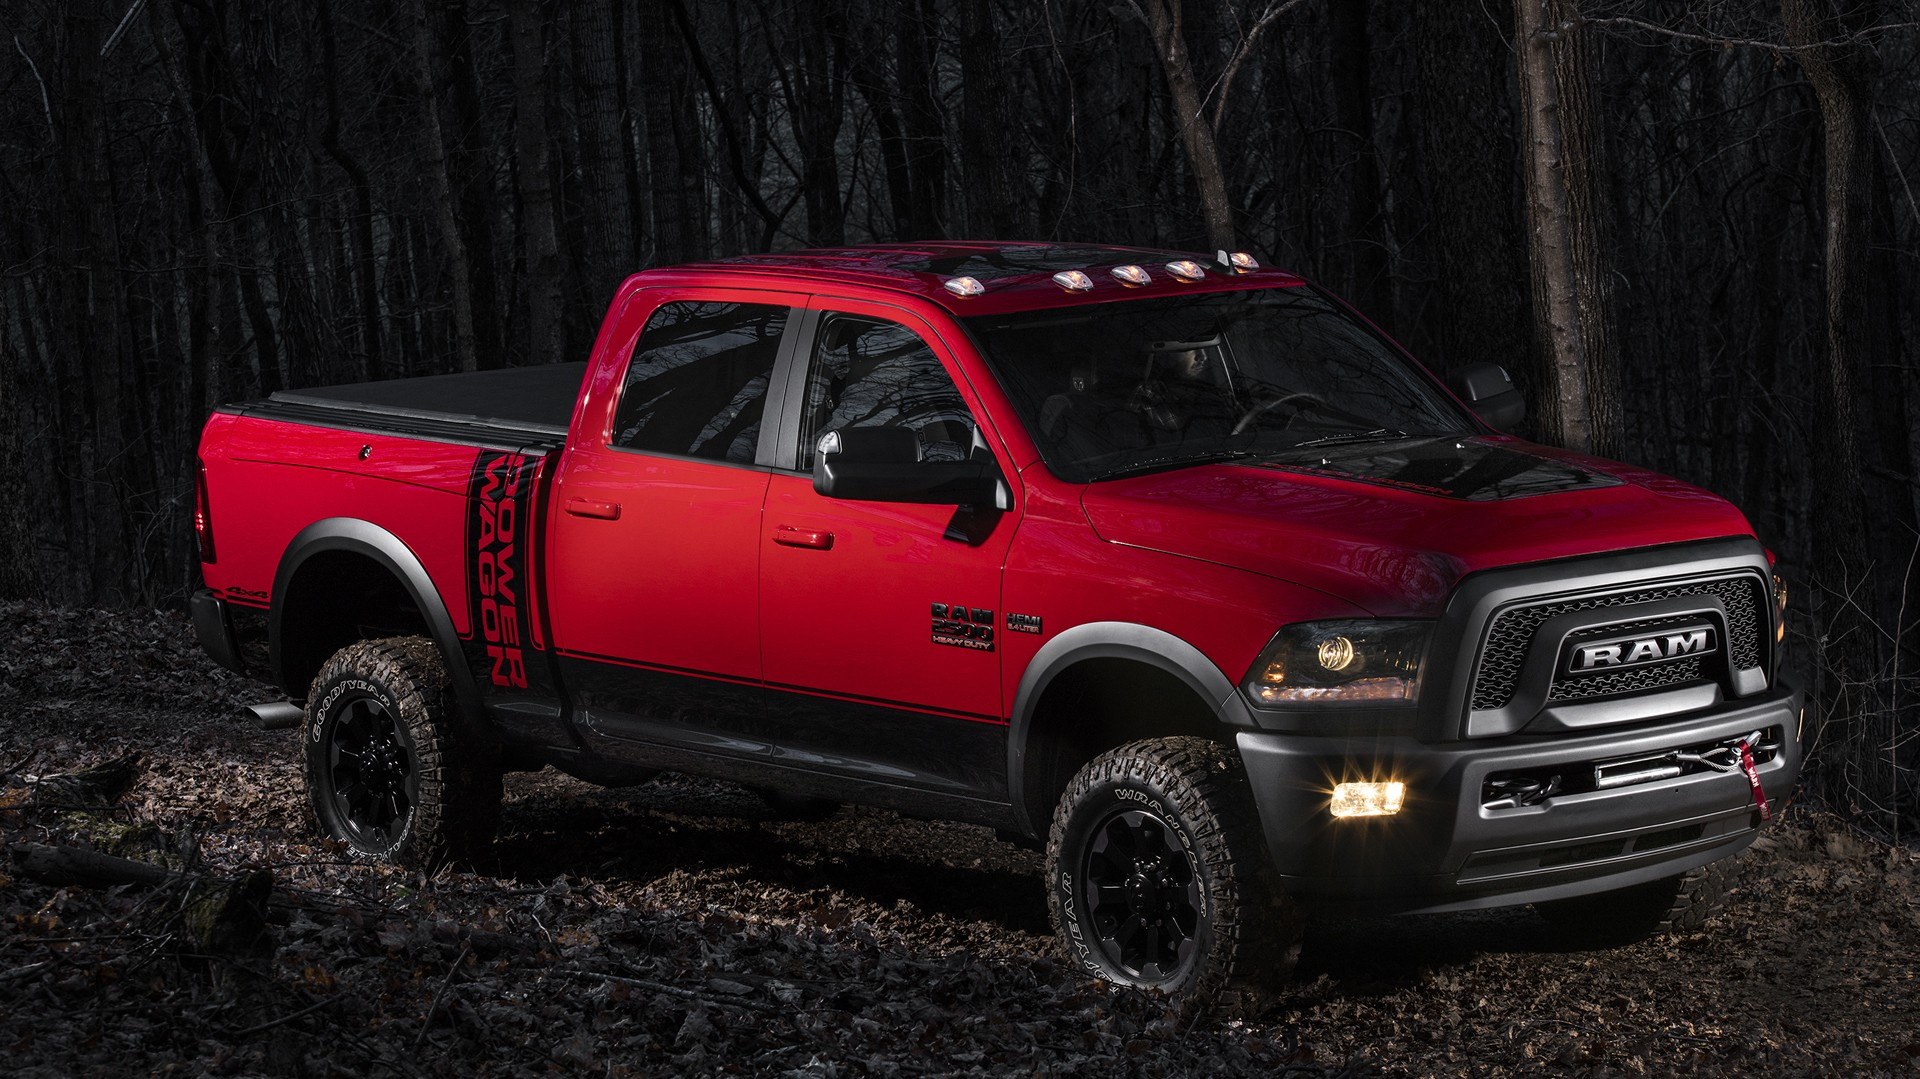 2017 Ram Power Wagon Ditches Chrome Grille For Blacked Out